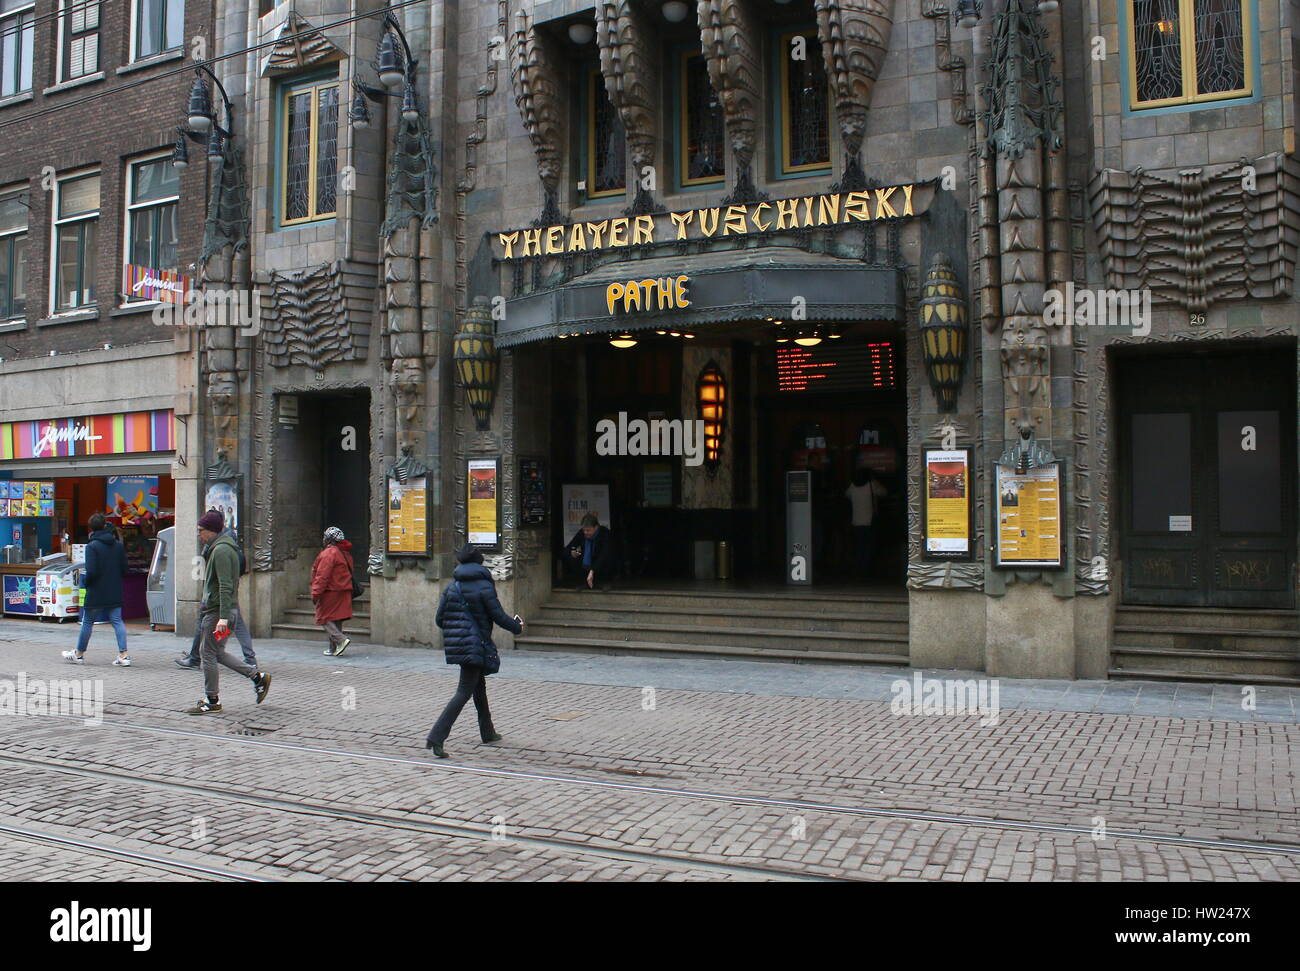 Cinema Pathé Tuschinski, an Art Nouveau film theater in Amsterdam, Netherlands. - Stock Image